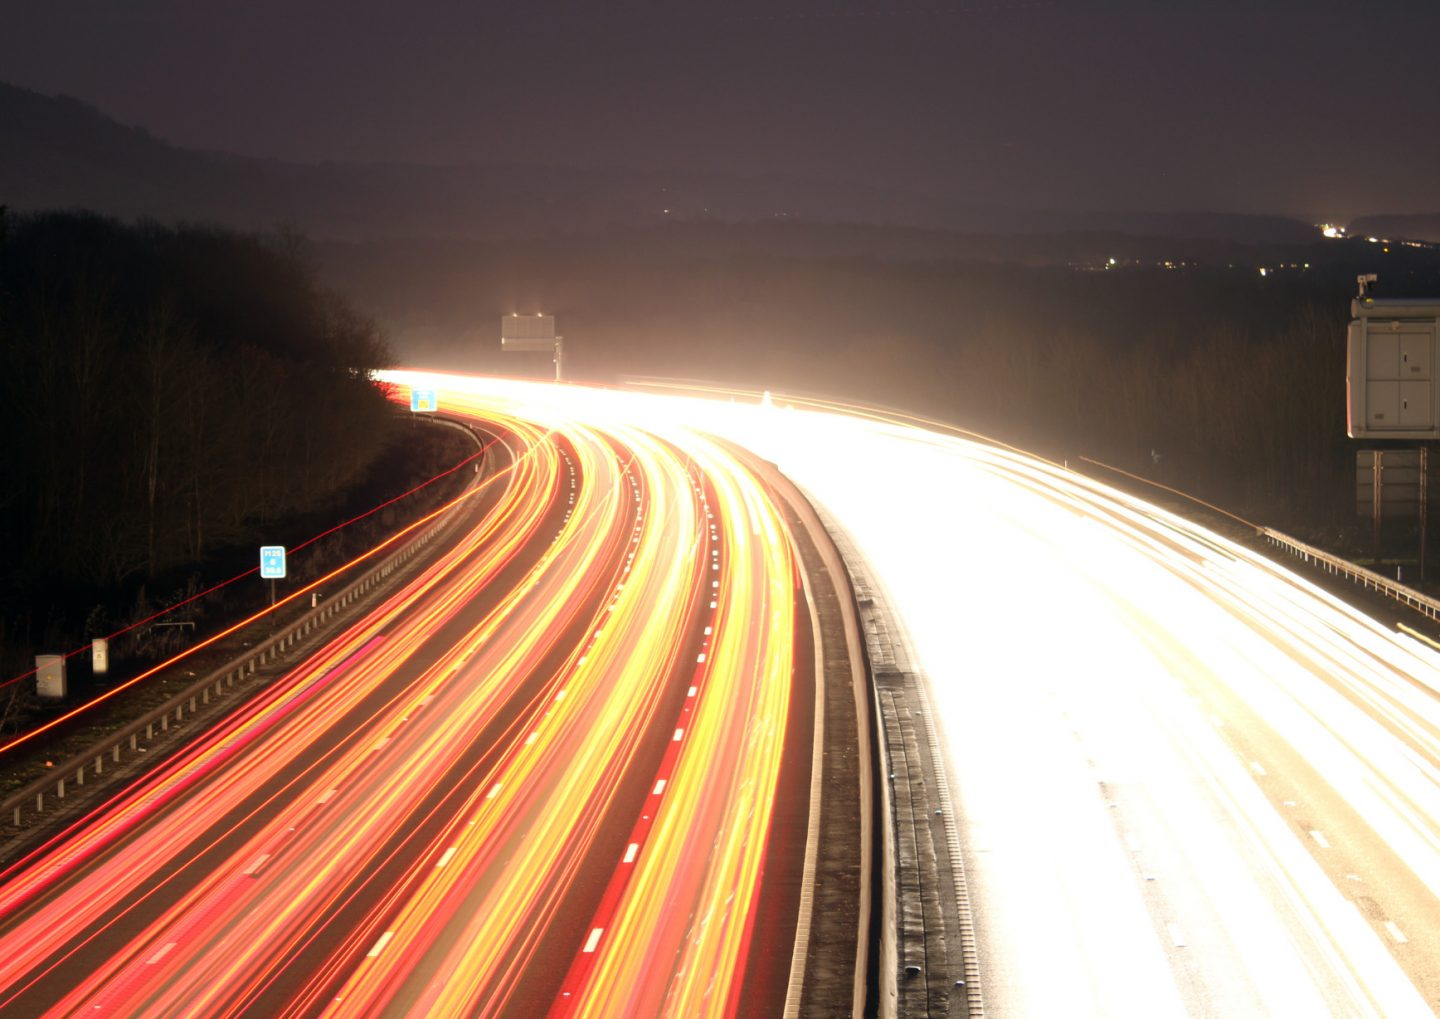 M25 at night photographed in 2017